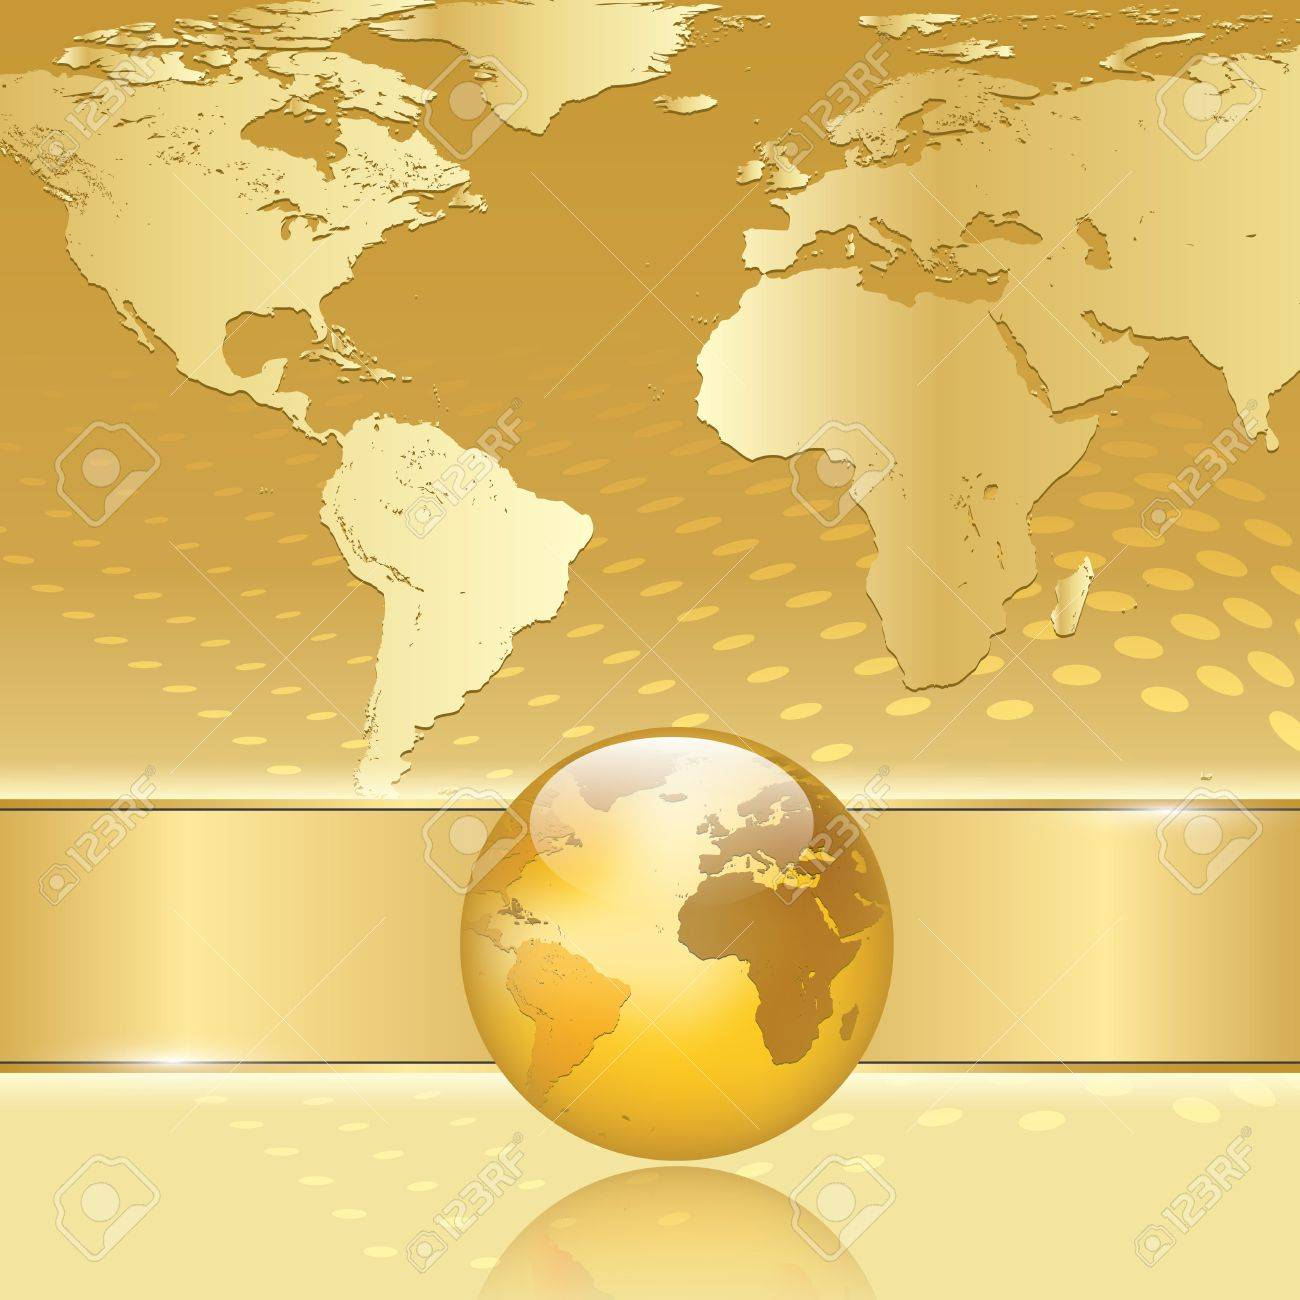 Abstract Gold Business Background With Earth Map Royalty Free